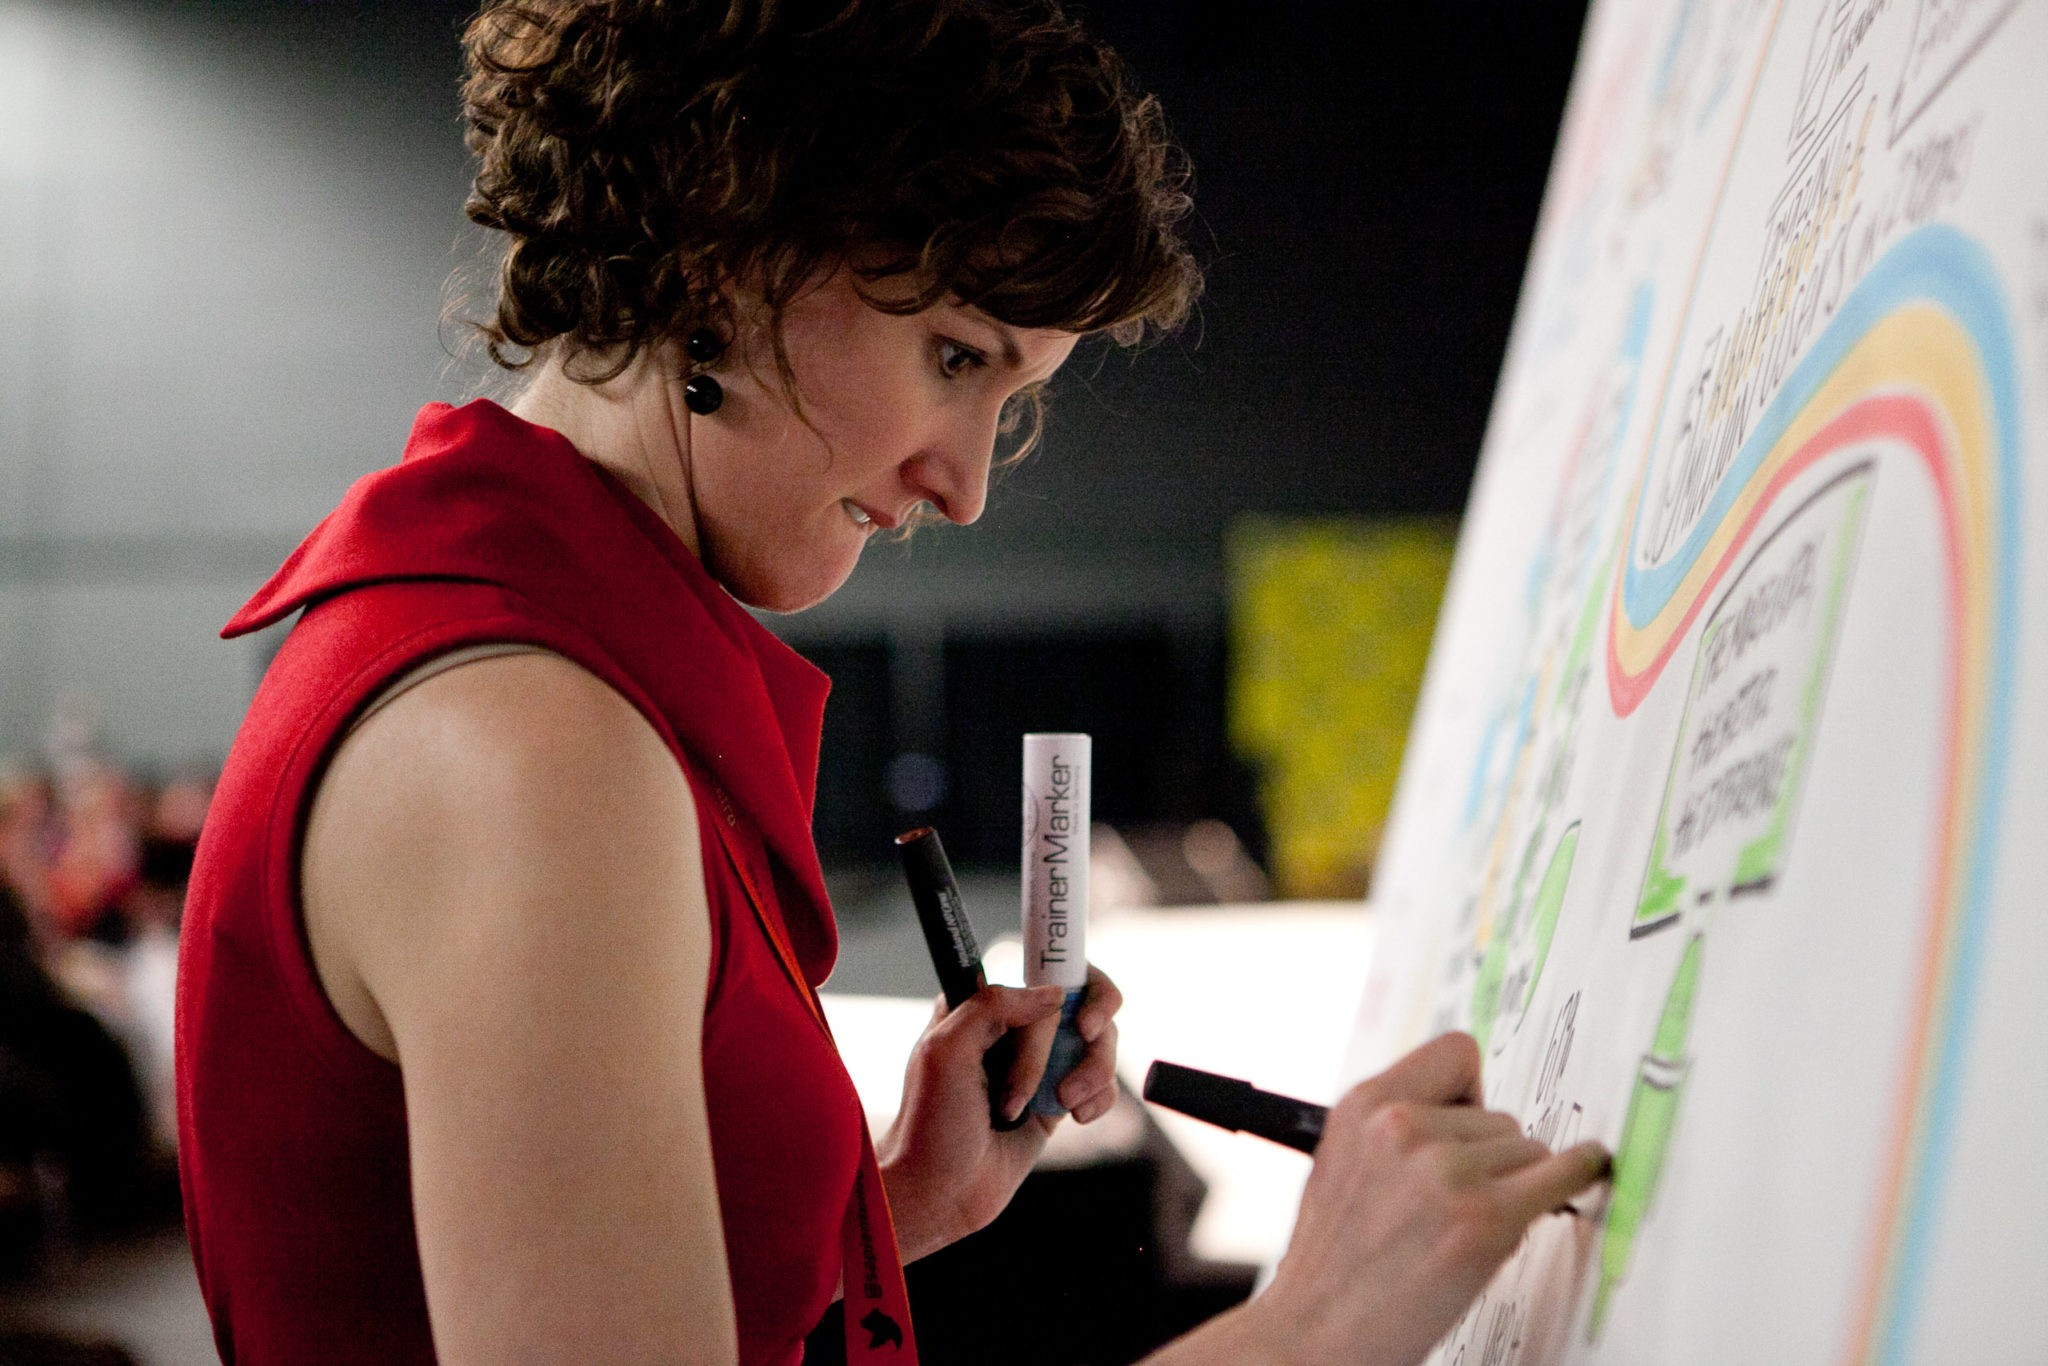 ImageThink founder, CEO, and Visual Leader Nora Herting graphic recording, using a traditional foam core board and markers.